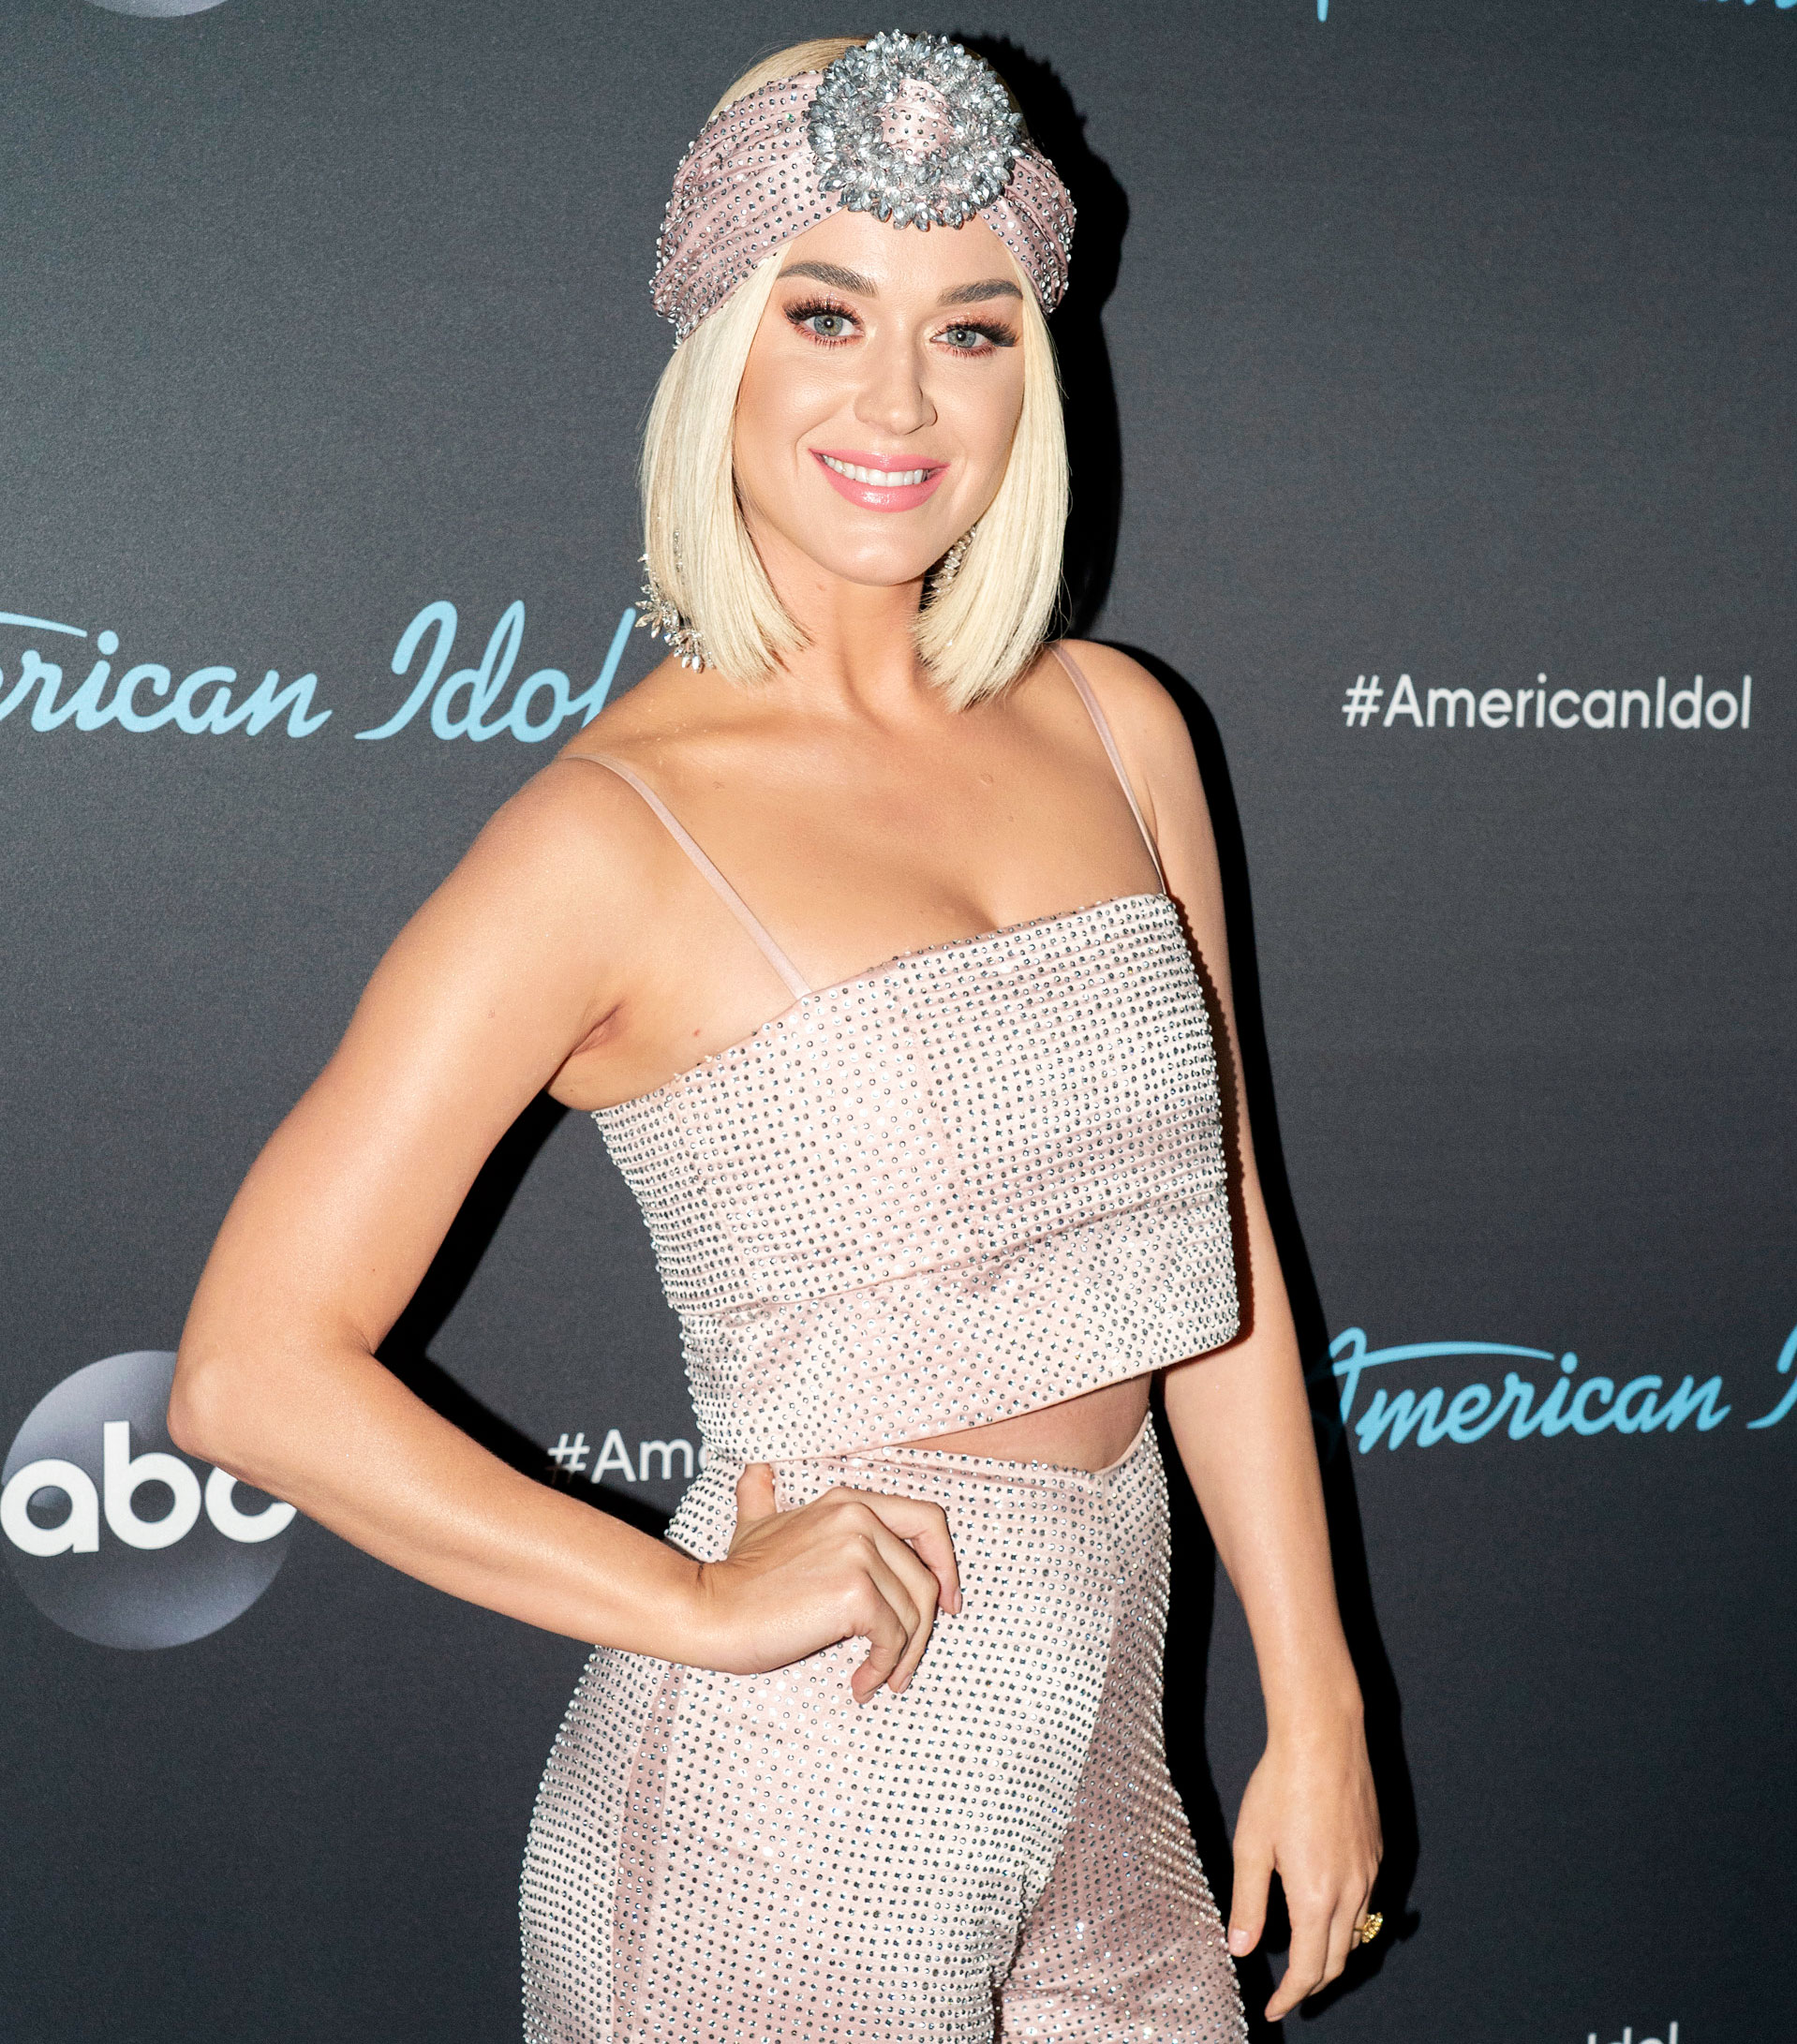 Katy Perry: Katy Perry Jokes She's Pregnant With Taco Bell After